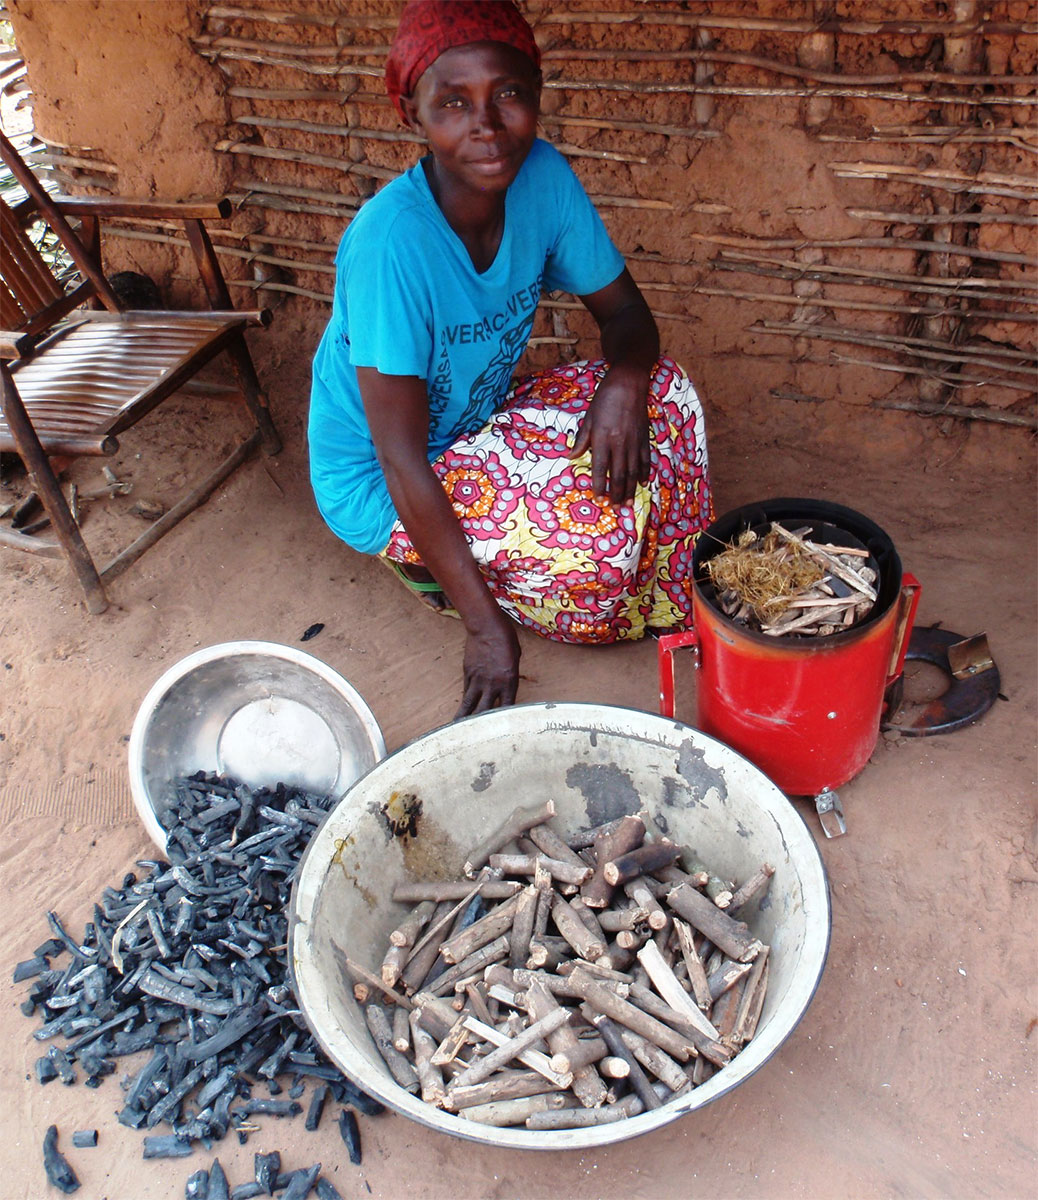 A woman at Mpoko village with the wood she uses to load her stove and the charcoal it has produced